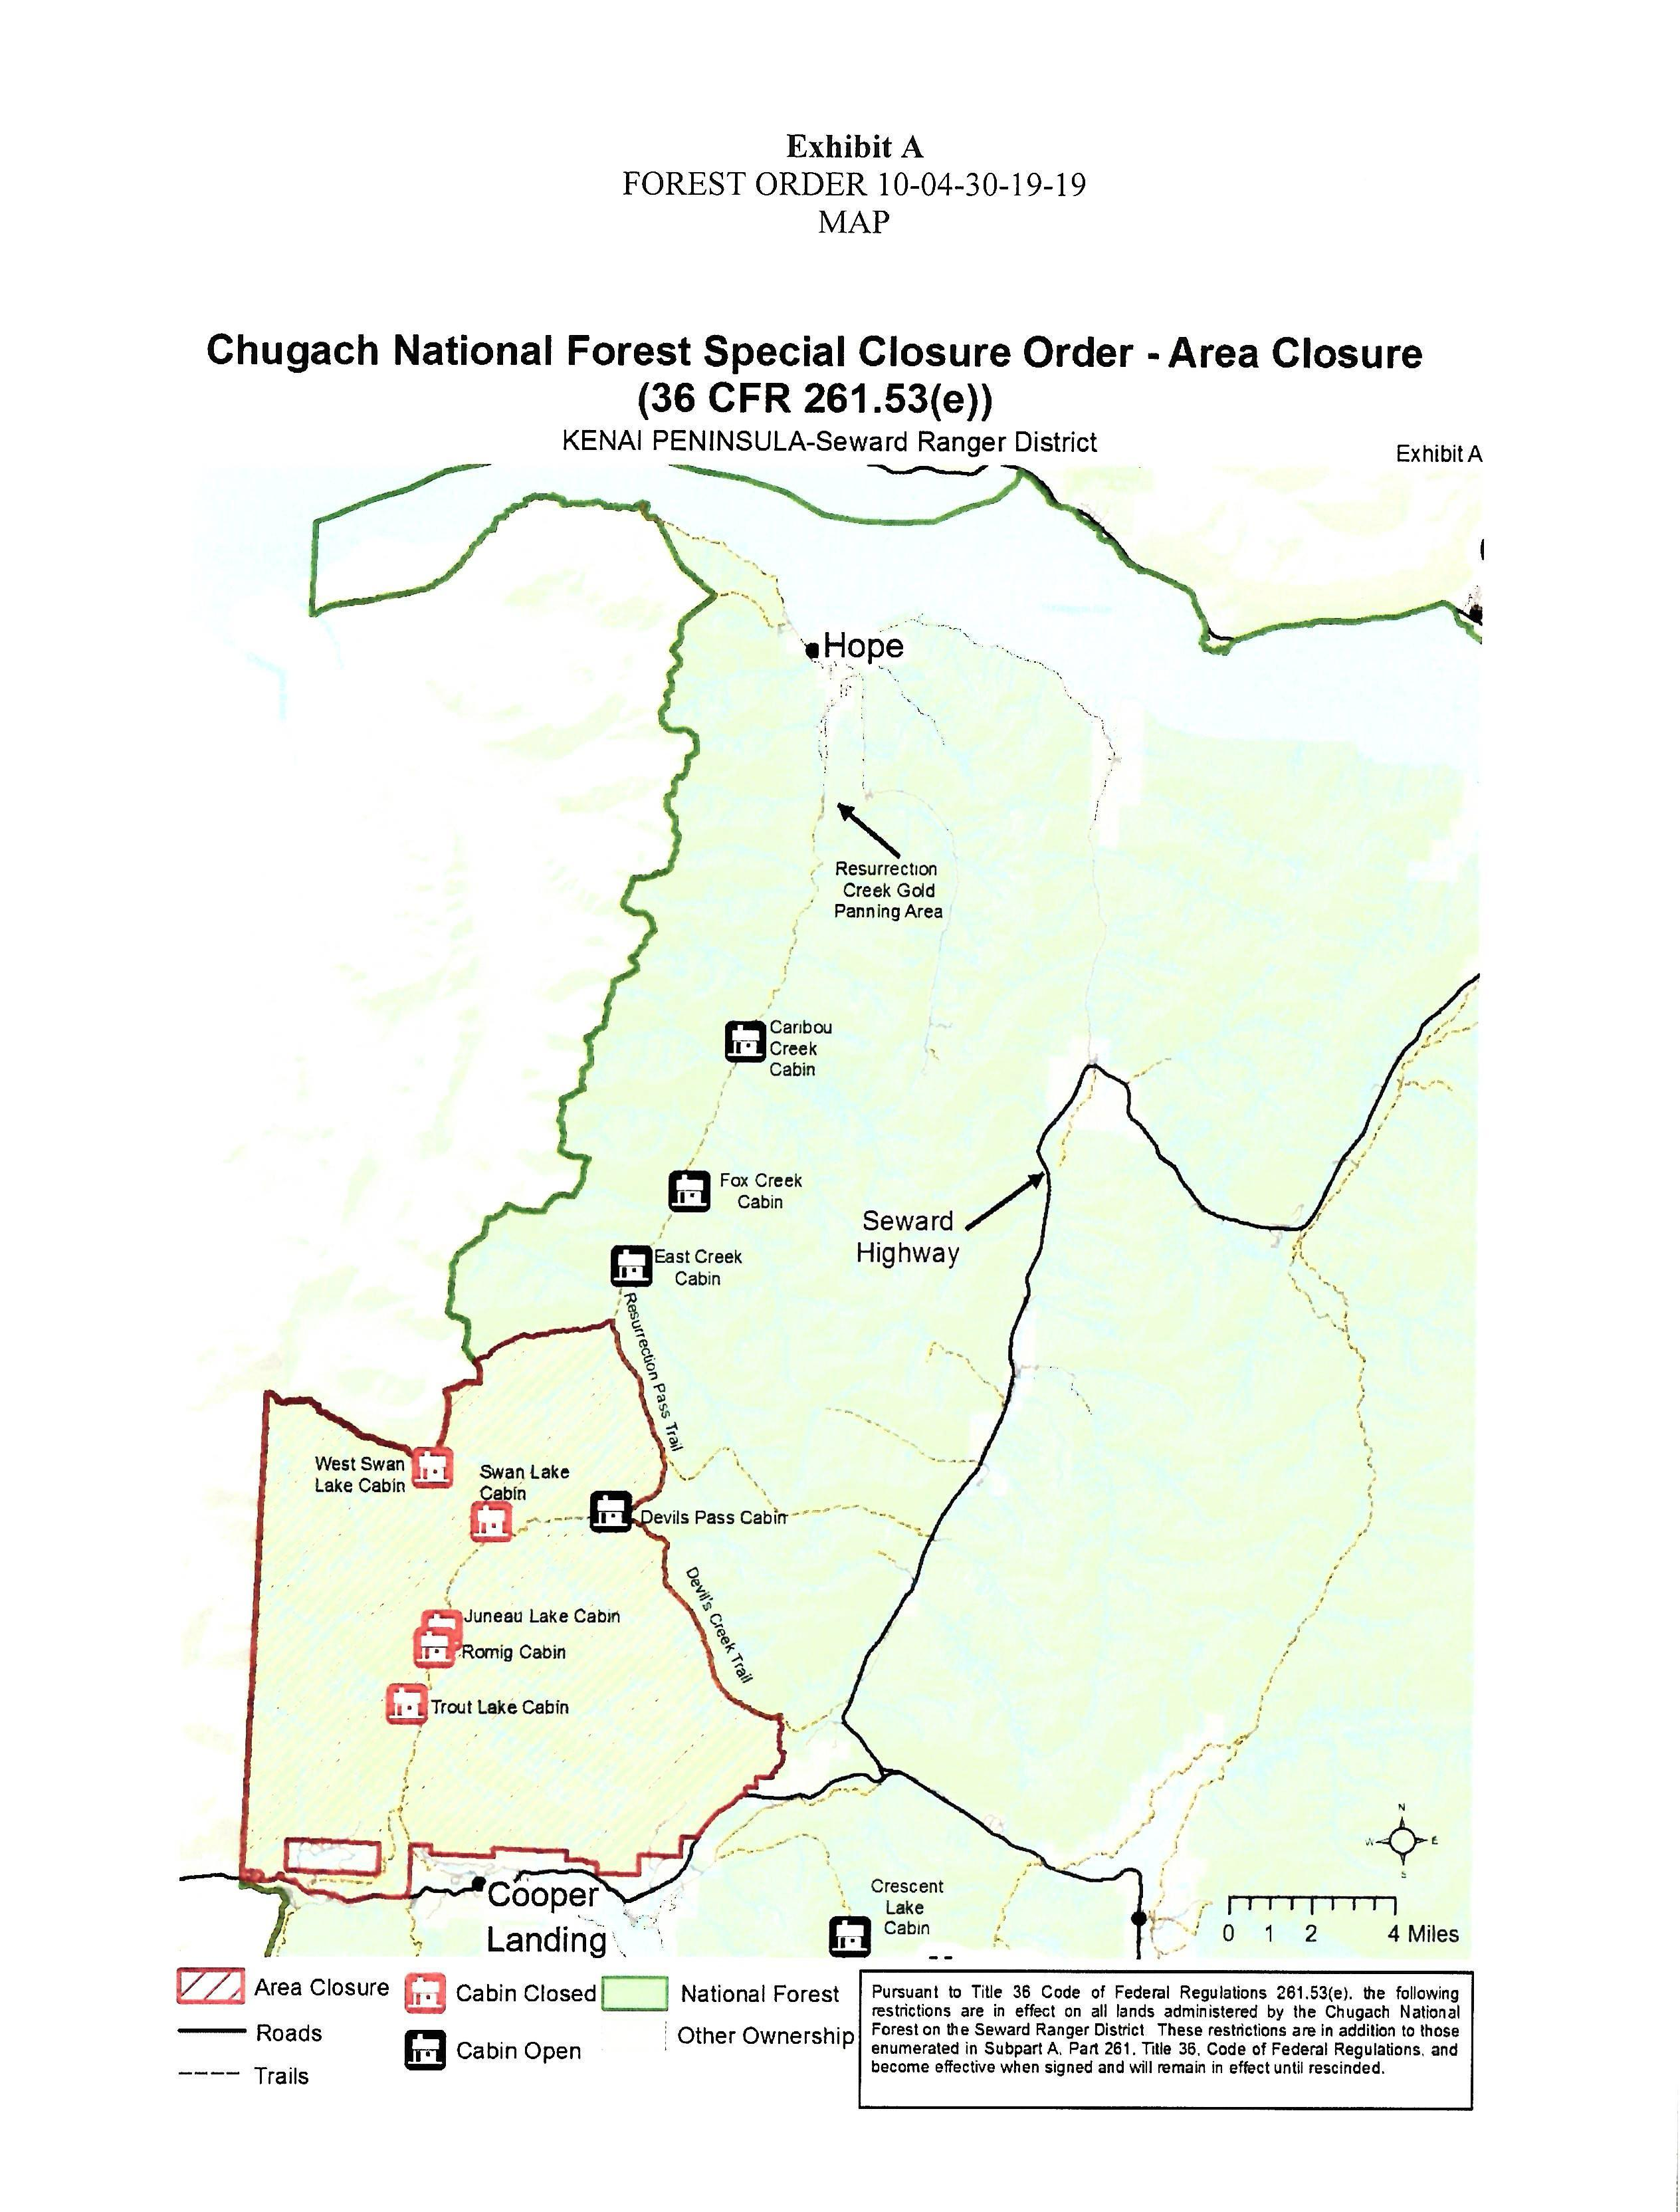 Chugach National Forest closure map.